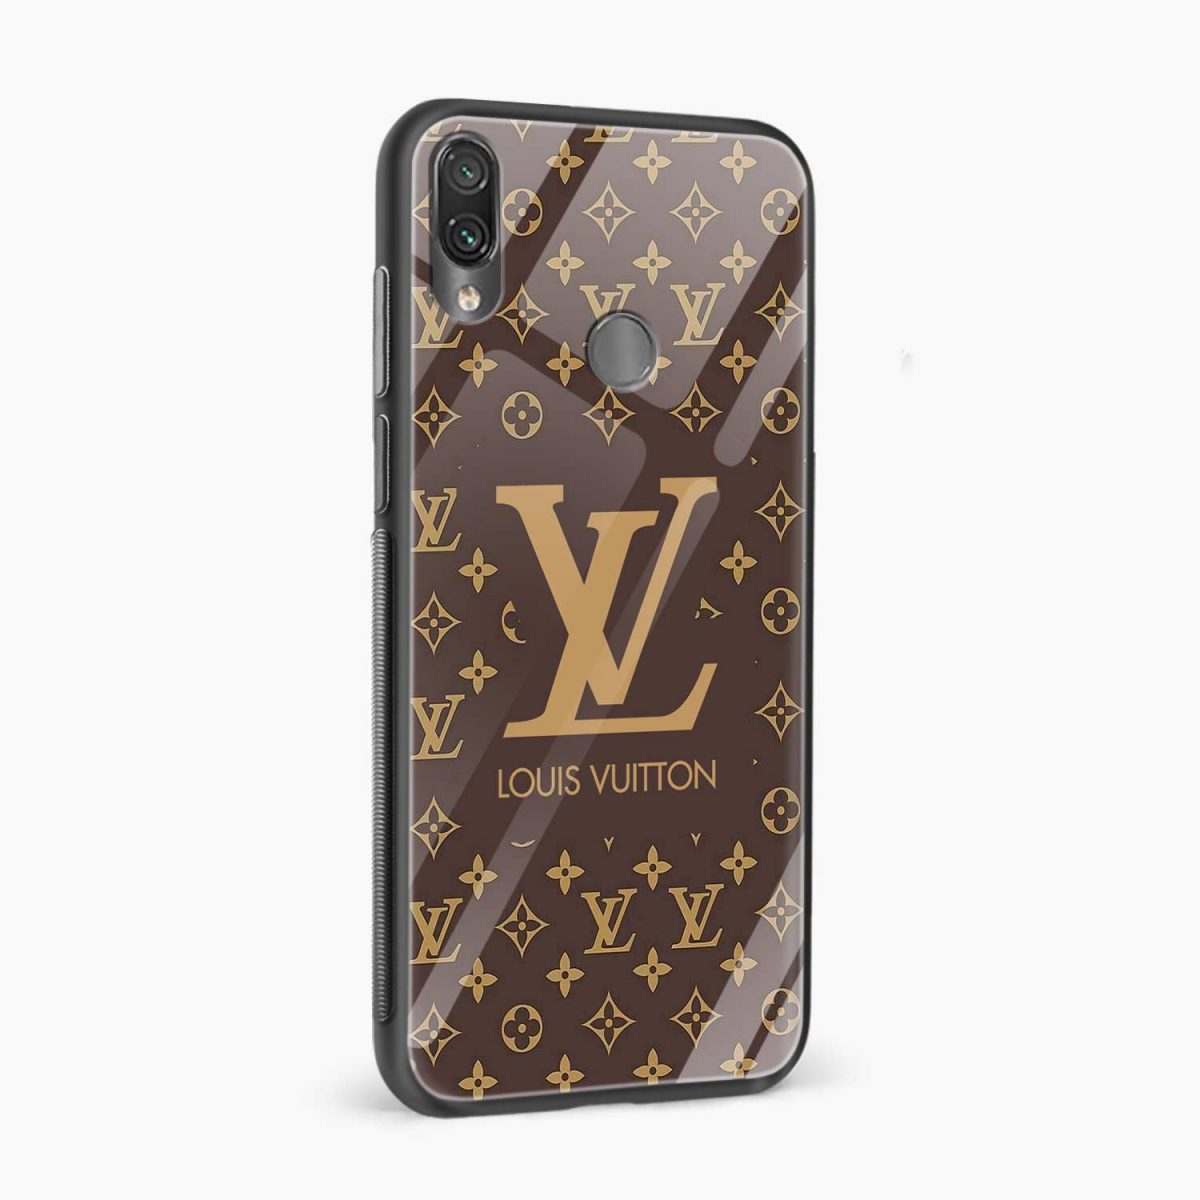 louis vuitton side view redmi note7 back cover